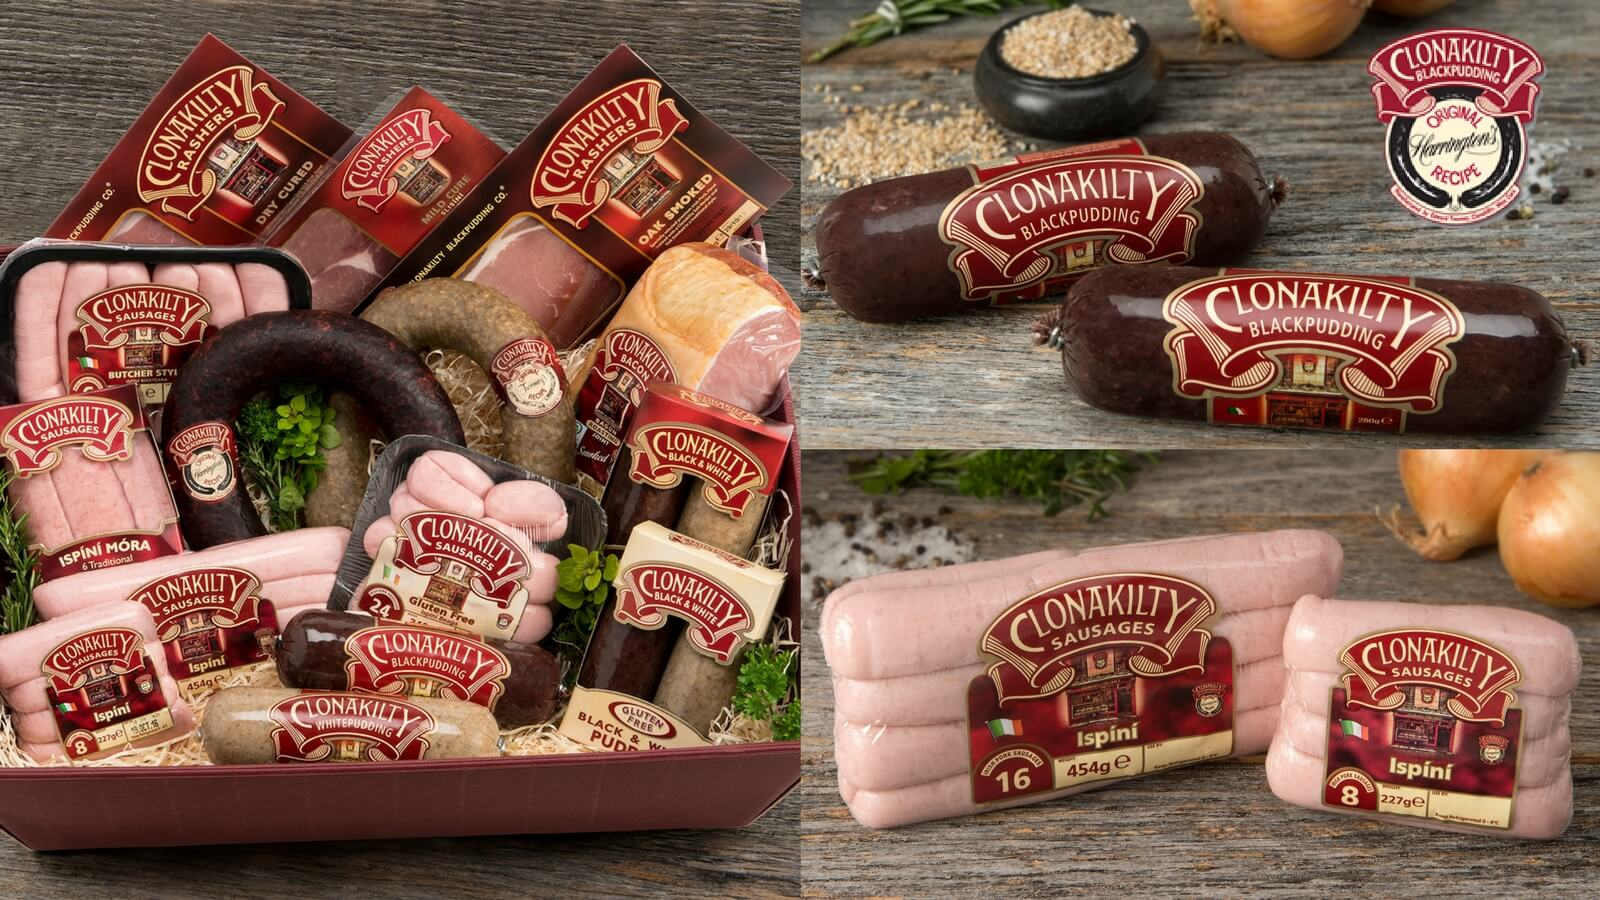 Clonakilty Blackpudding – Products